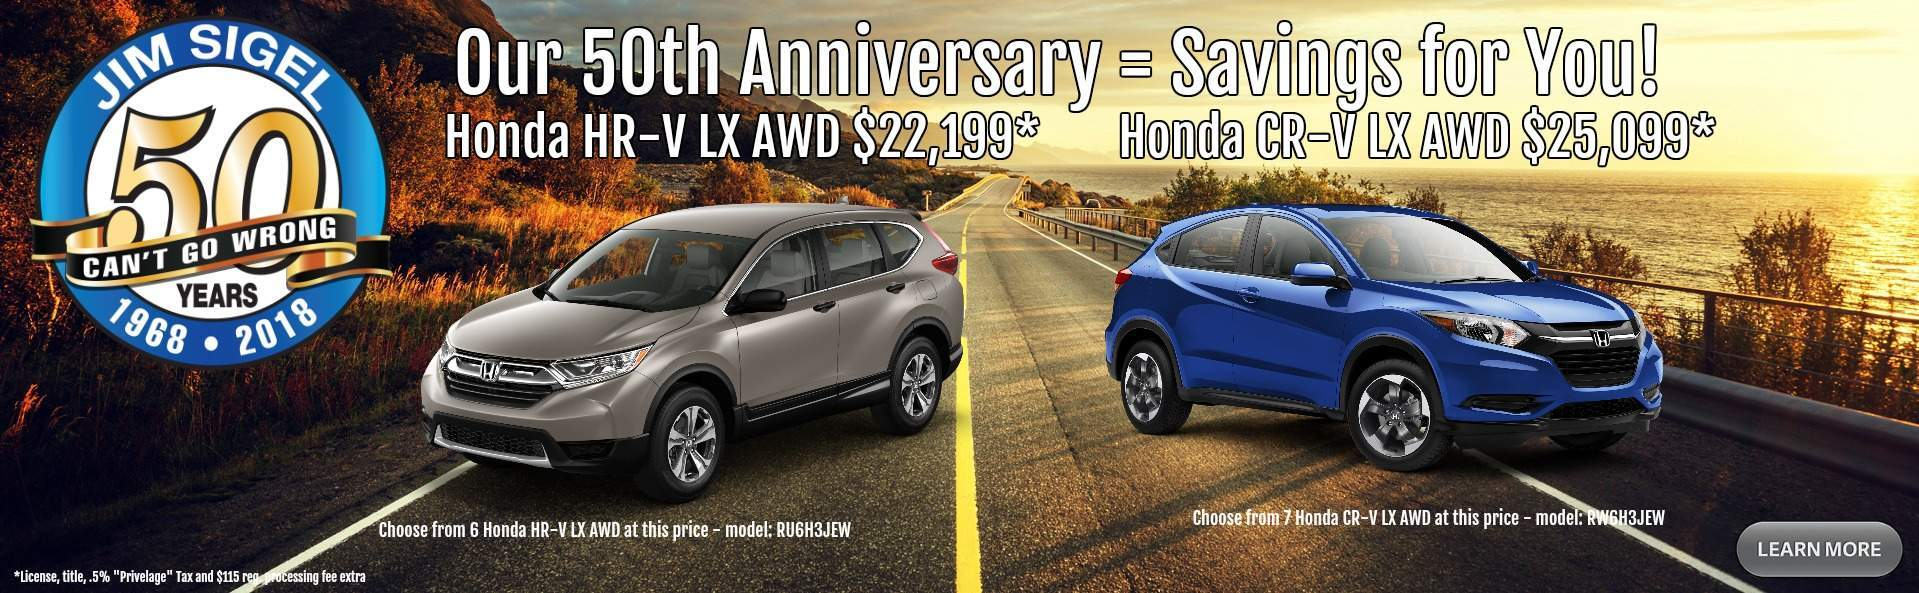 50th Anniversary Honda Specials